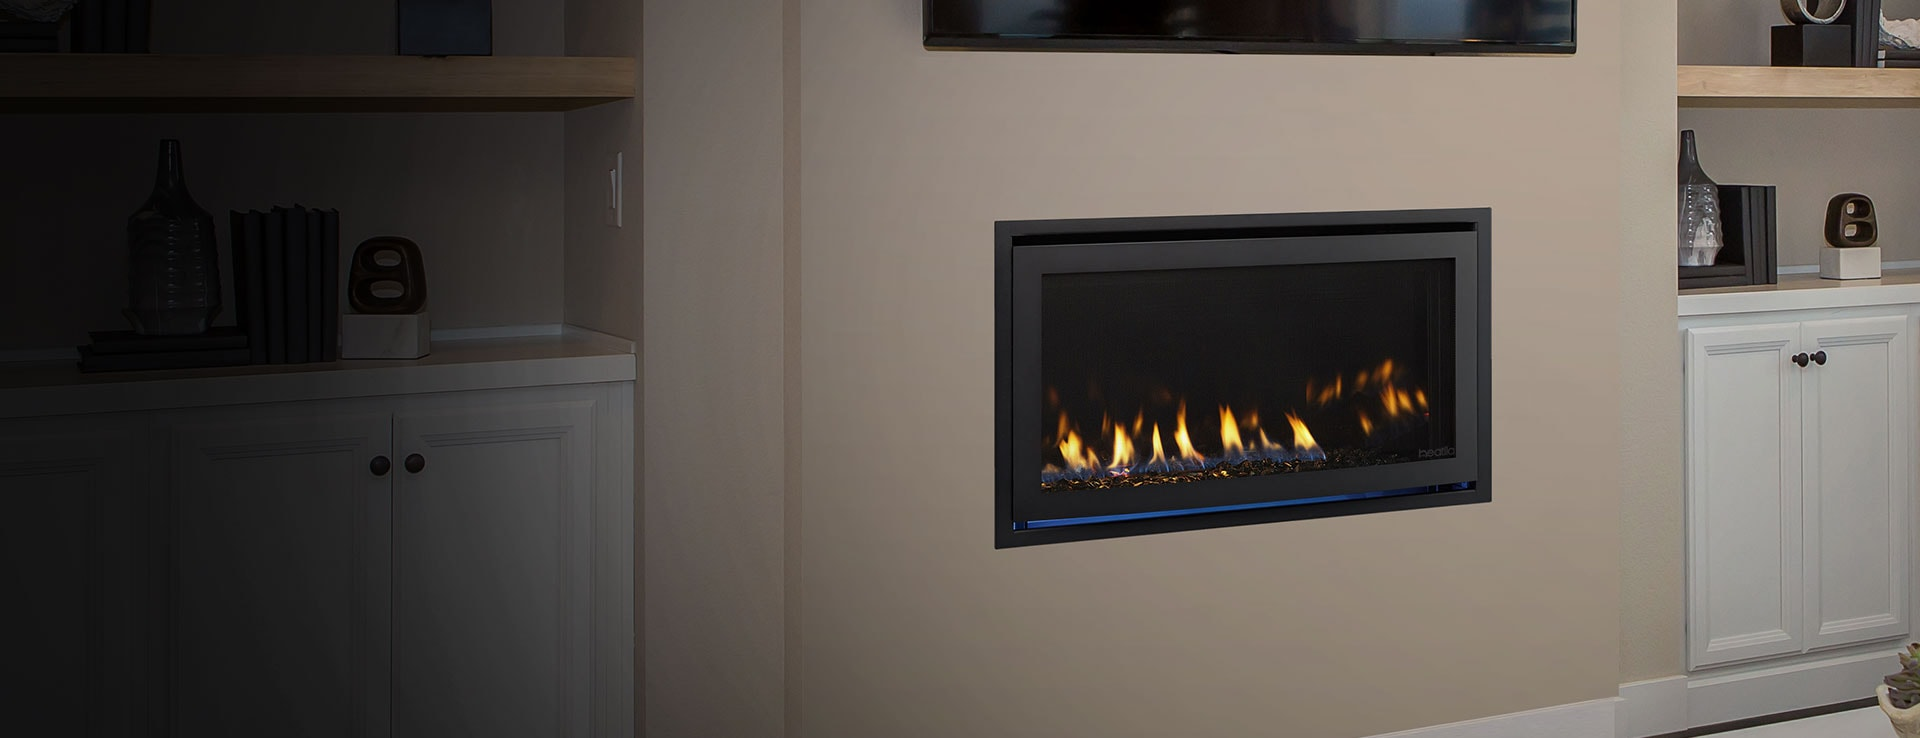 rave series gas fireplaces great fireplace value heatilator